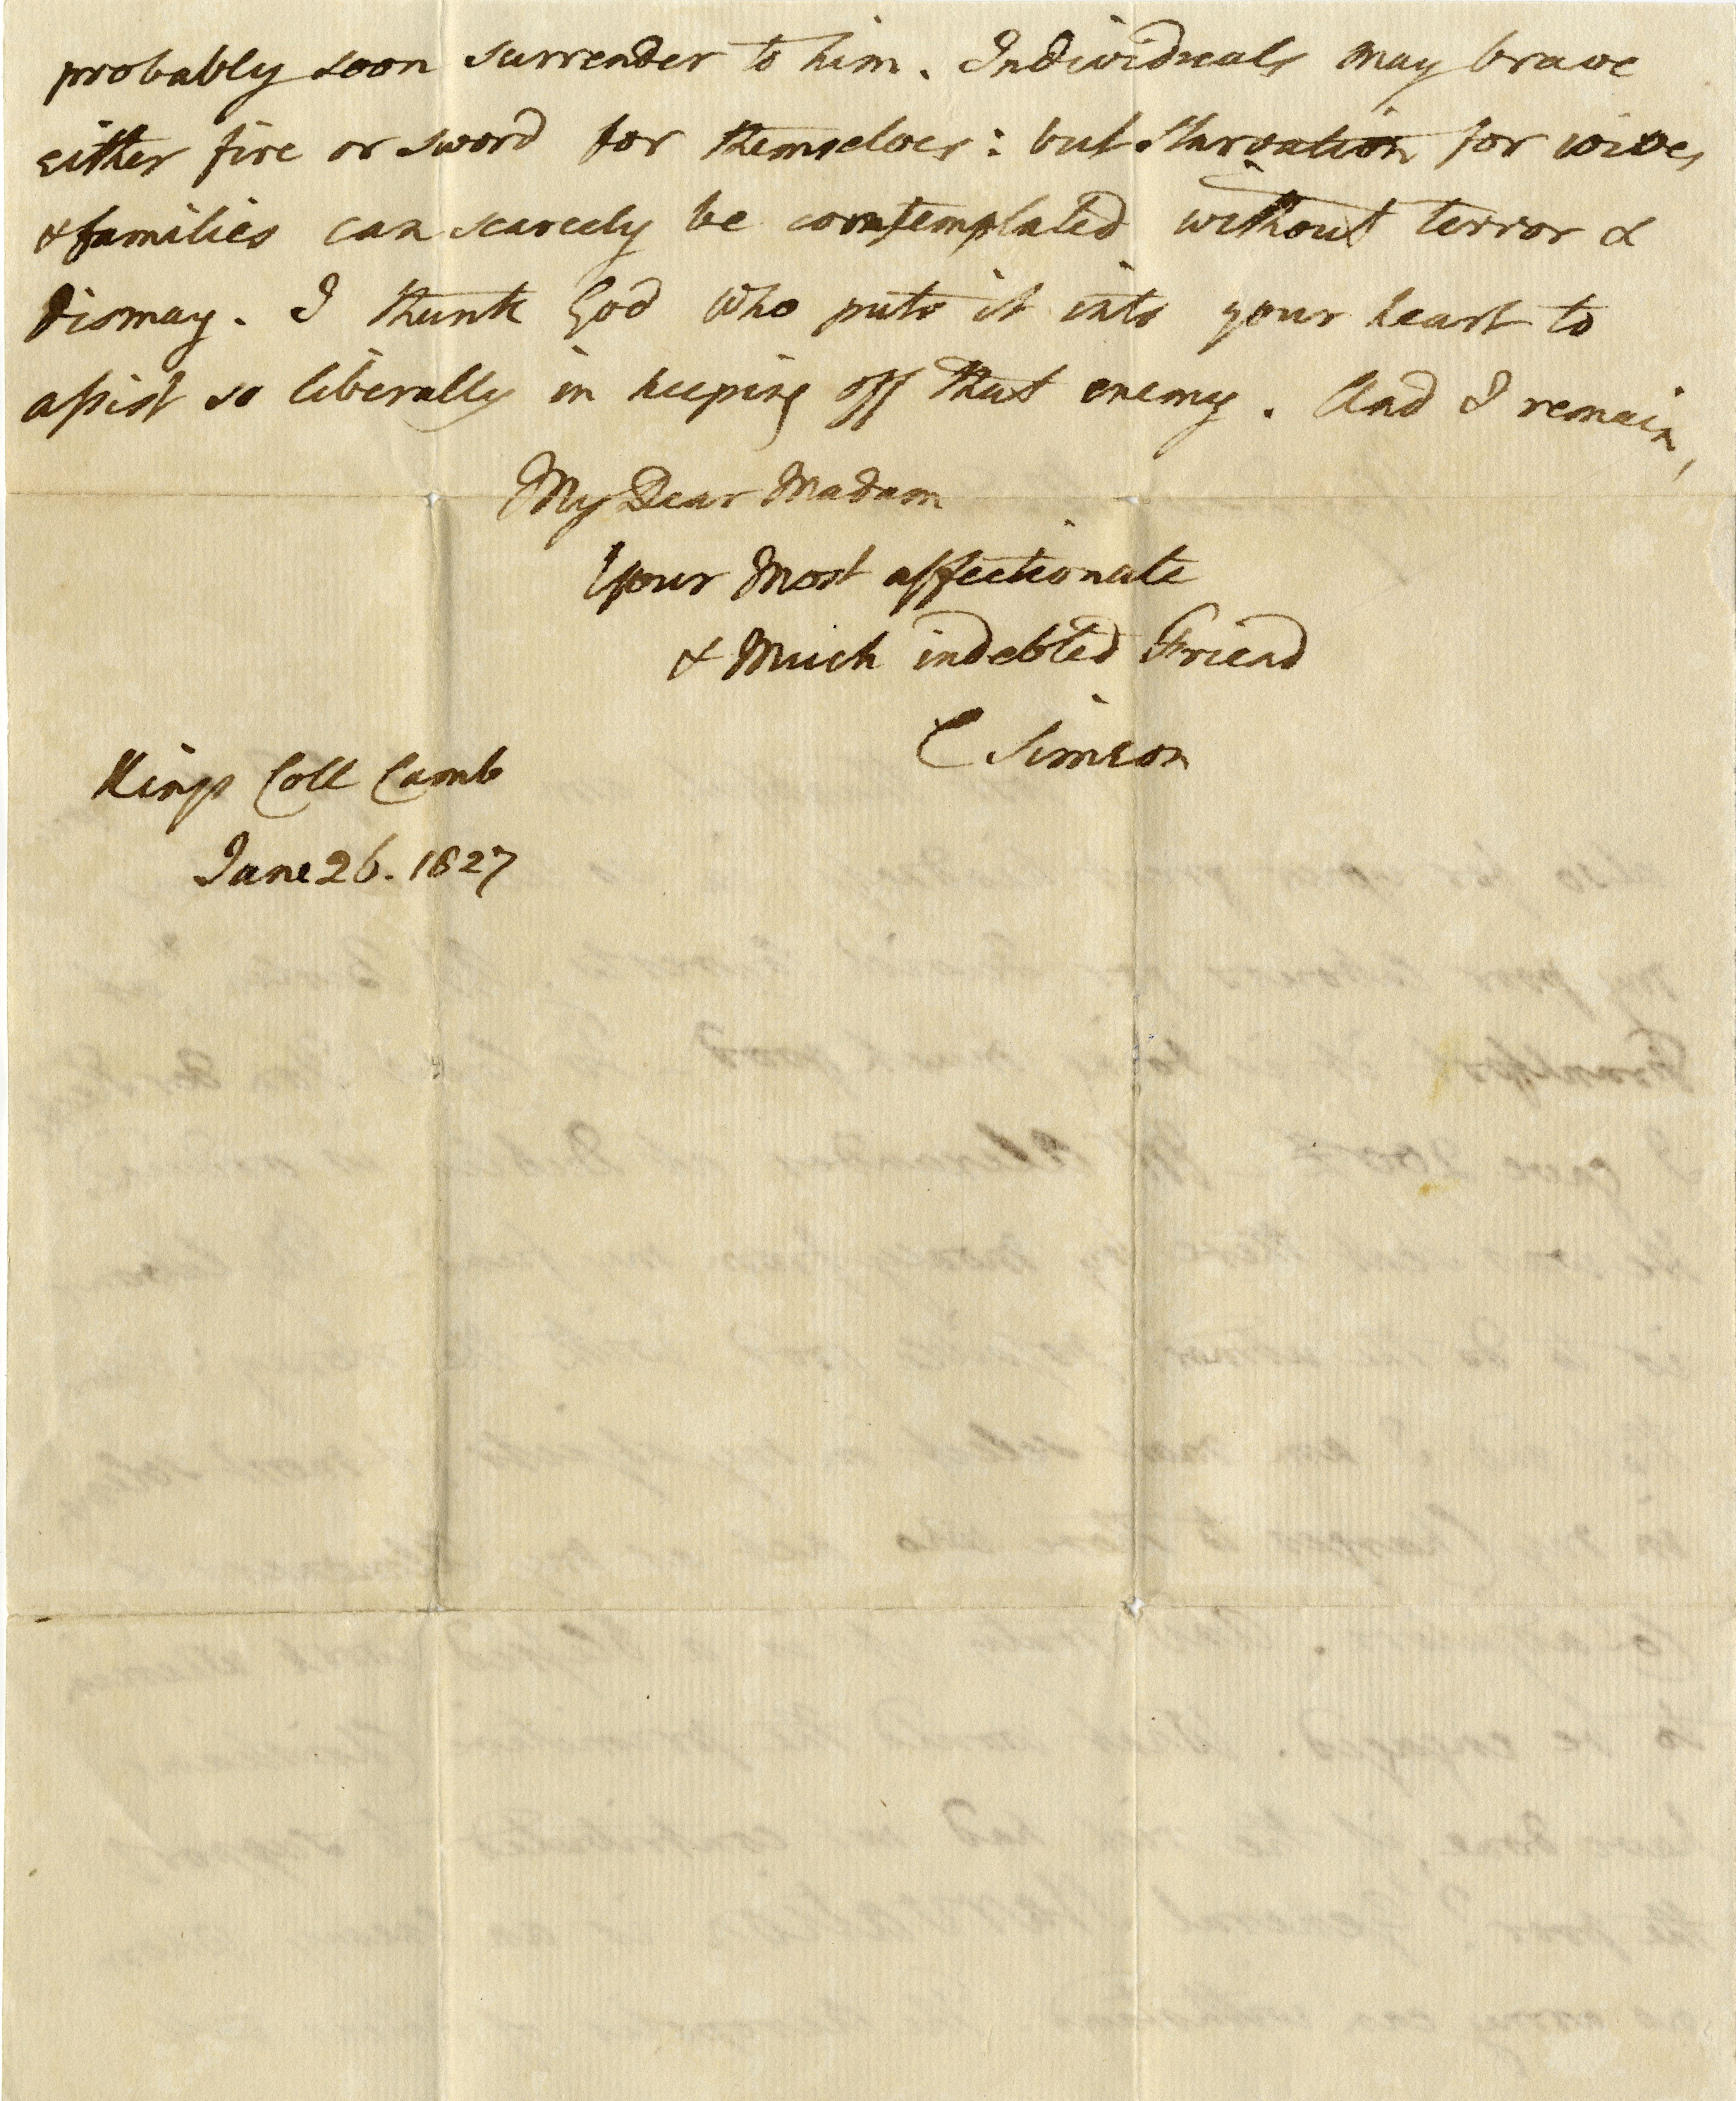 Second page of a letter from Simeon to one of his supporters of the churches for converted Jews. (CS/1/Bowdler-1827-01-26)